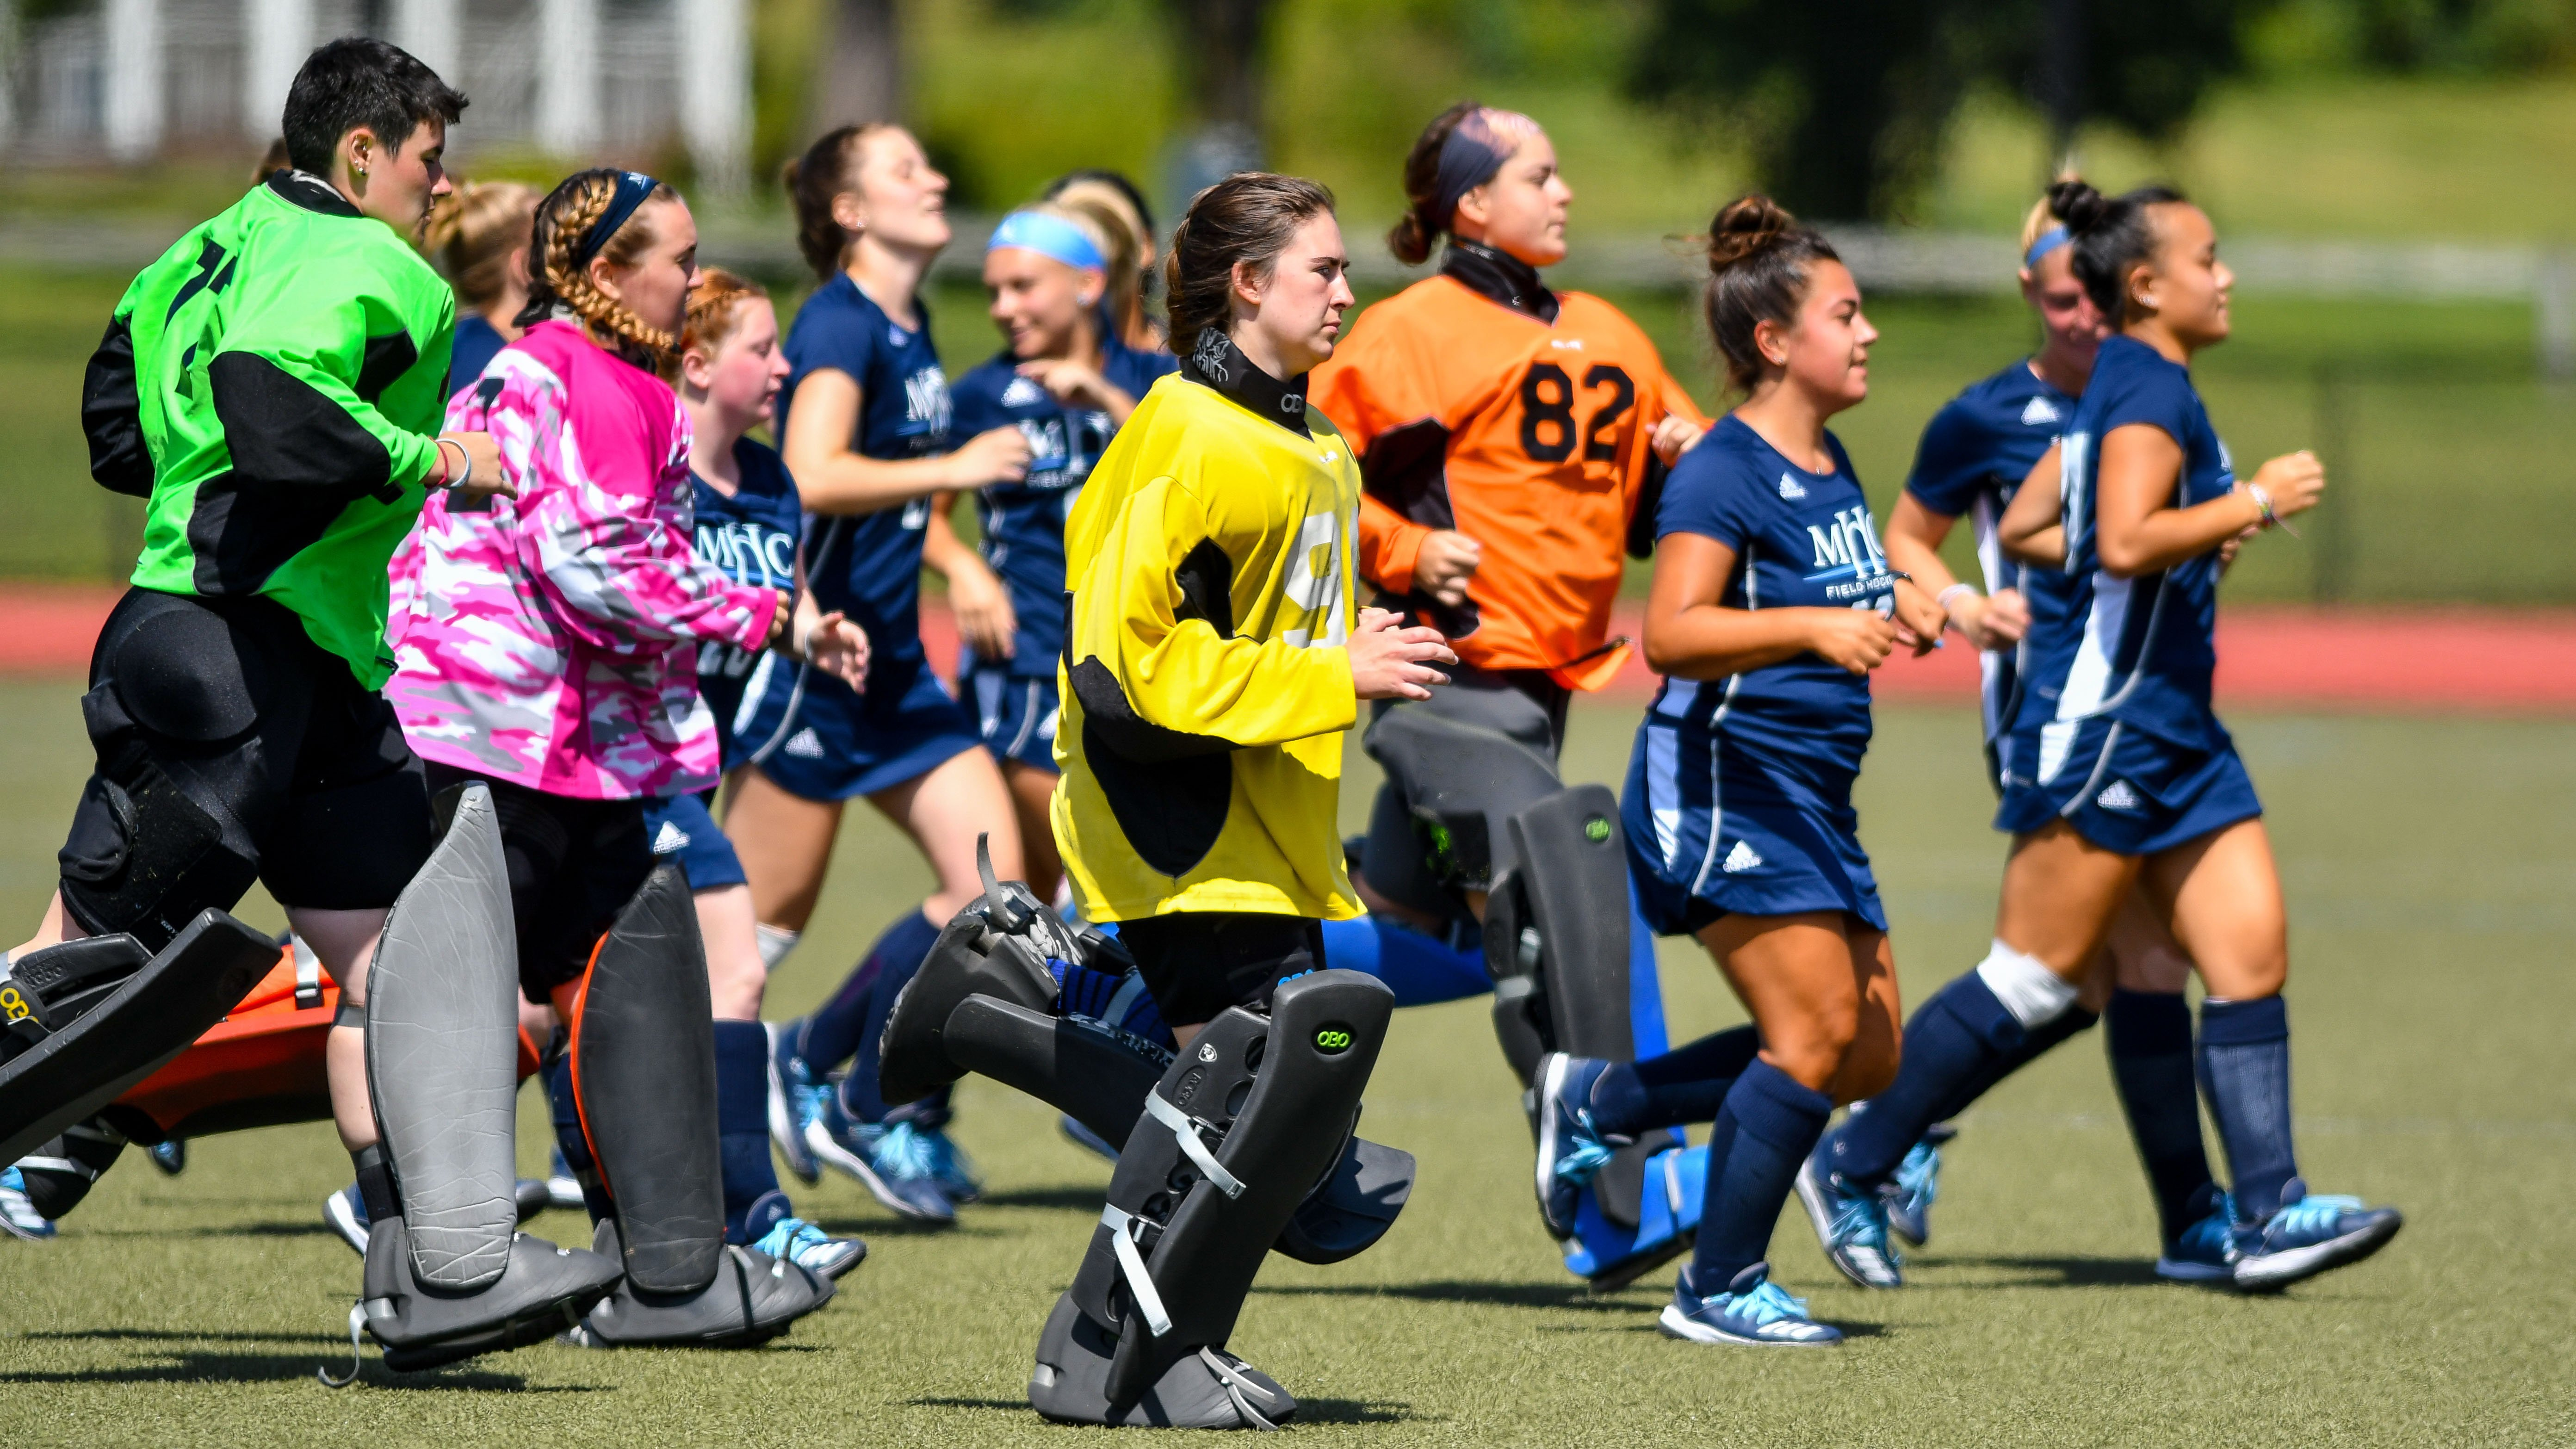 Author Morgan Turner '20 (#82) on the field with her teammates. Image courtesy of Mount Holyoke College Athletics.